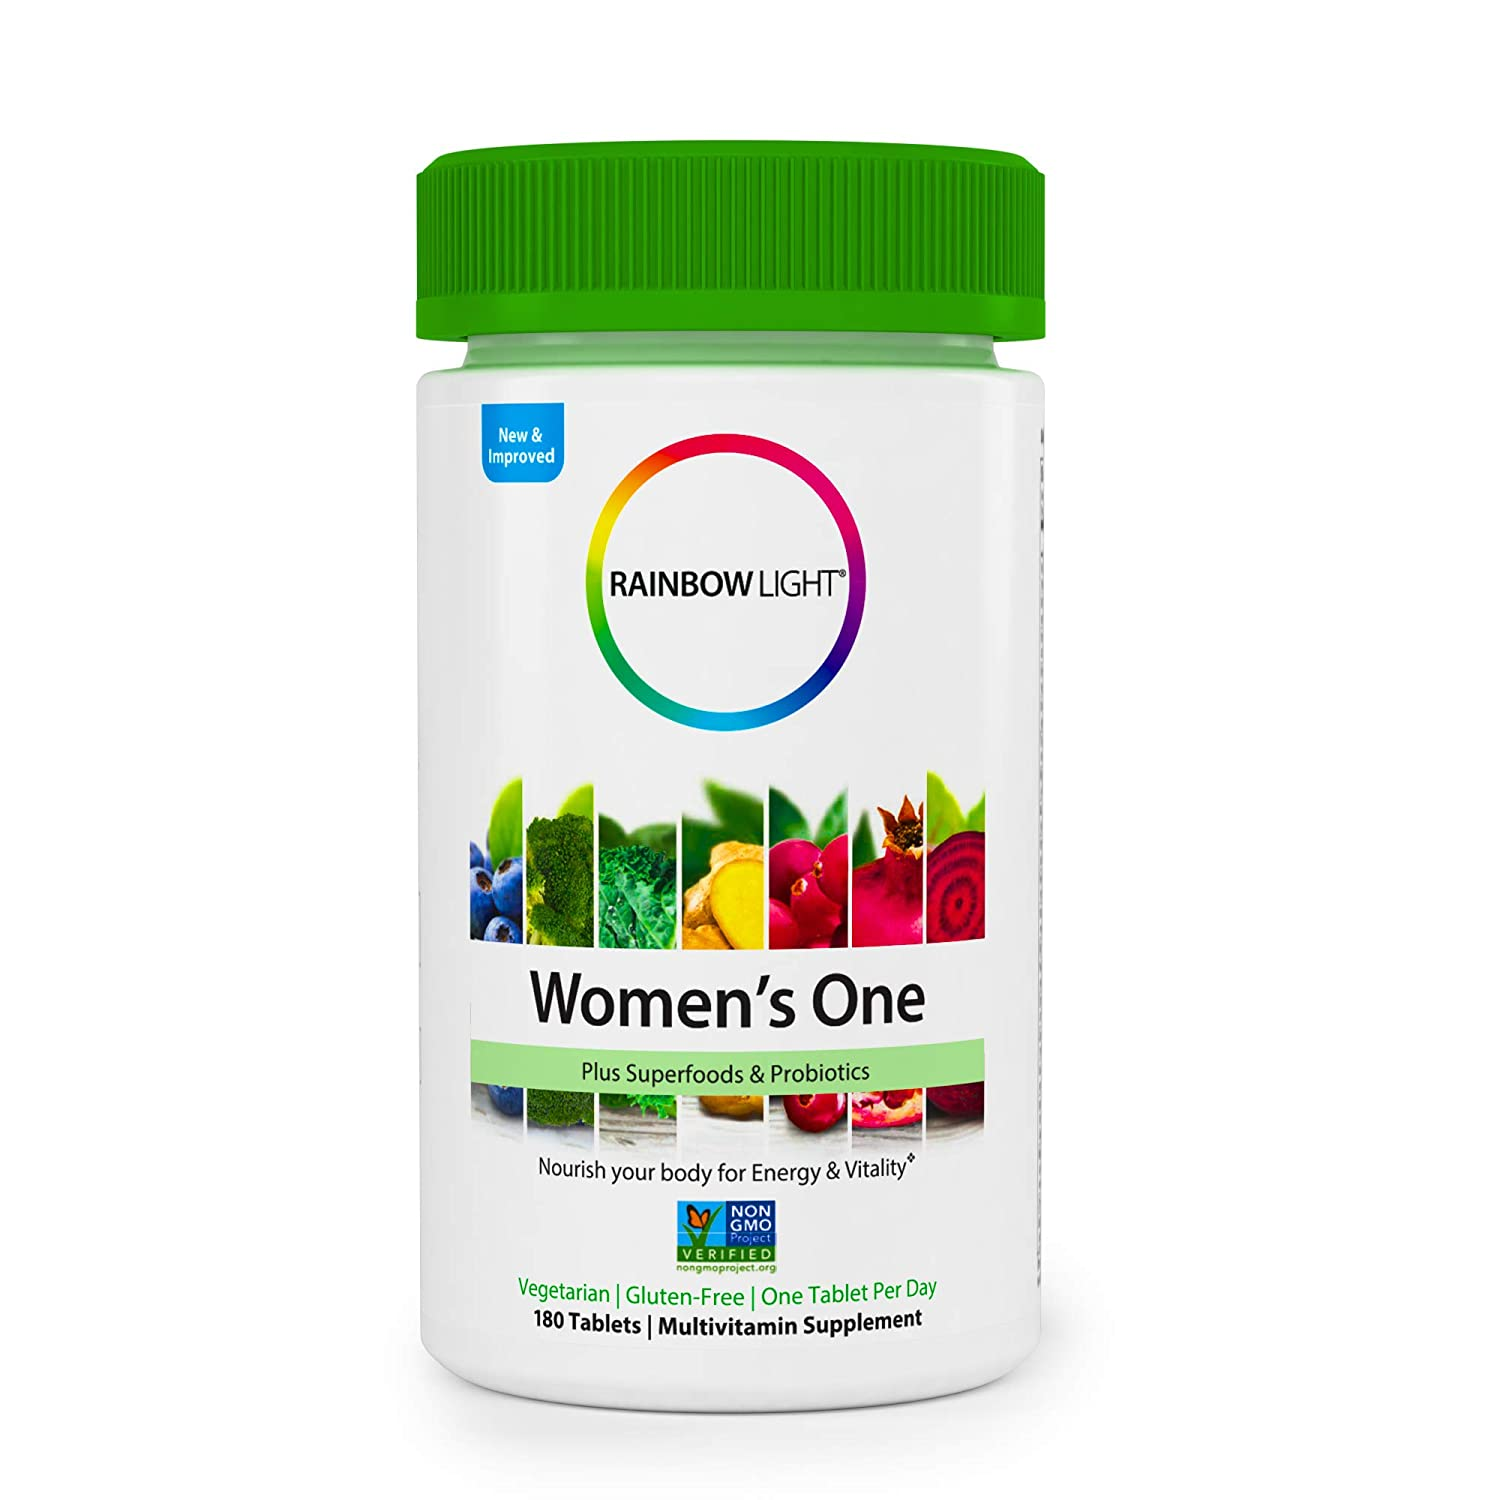 Rainbow Light Women s One Multivitamin Supplement Netcount, 180 Tablets 180Count